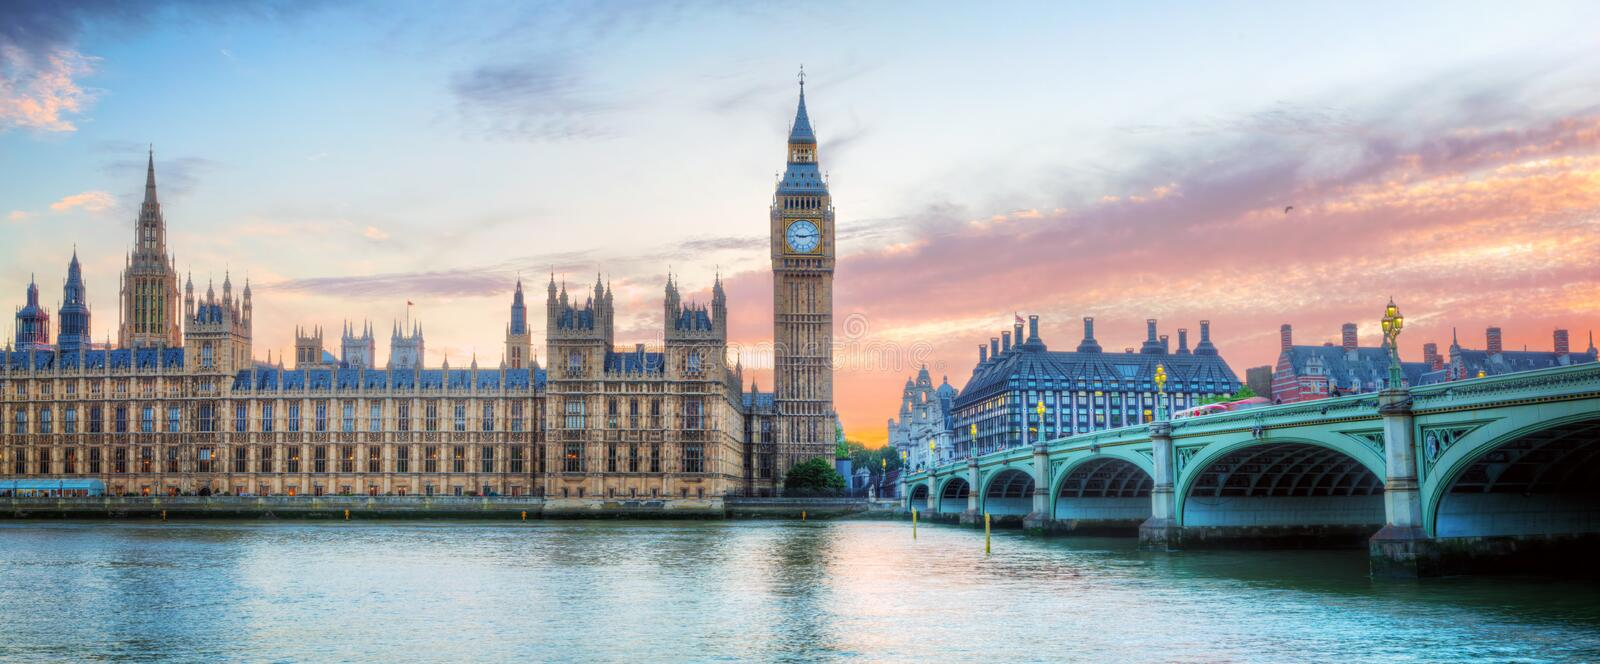 London, UK panorama. Big Ben in Westminster Palace on River Thames at sunset royalty free stock photos